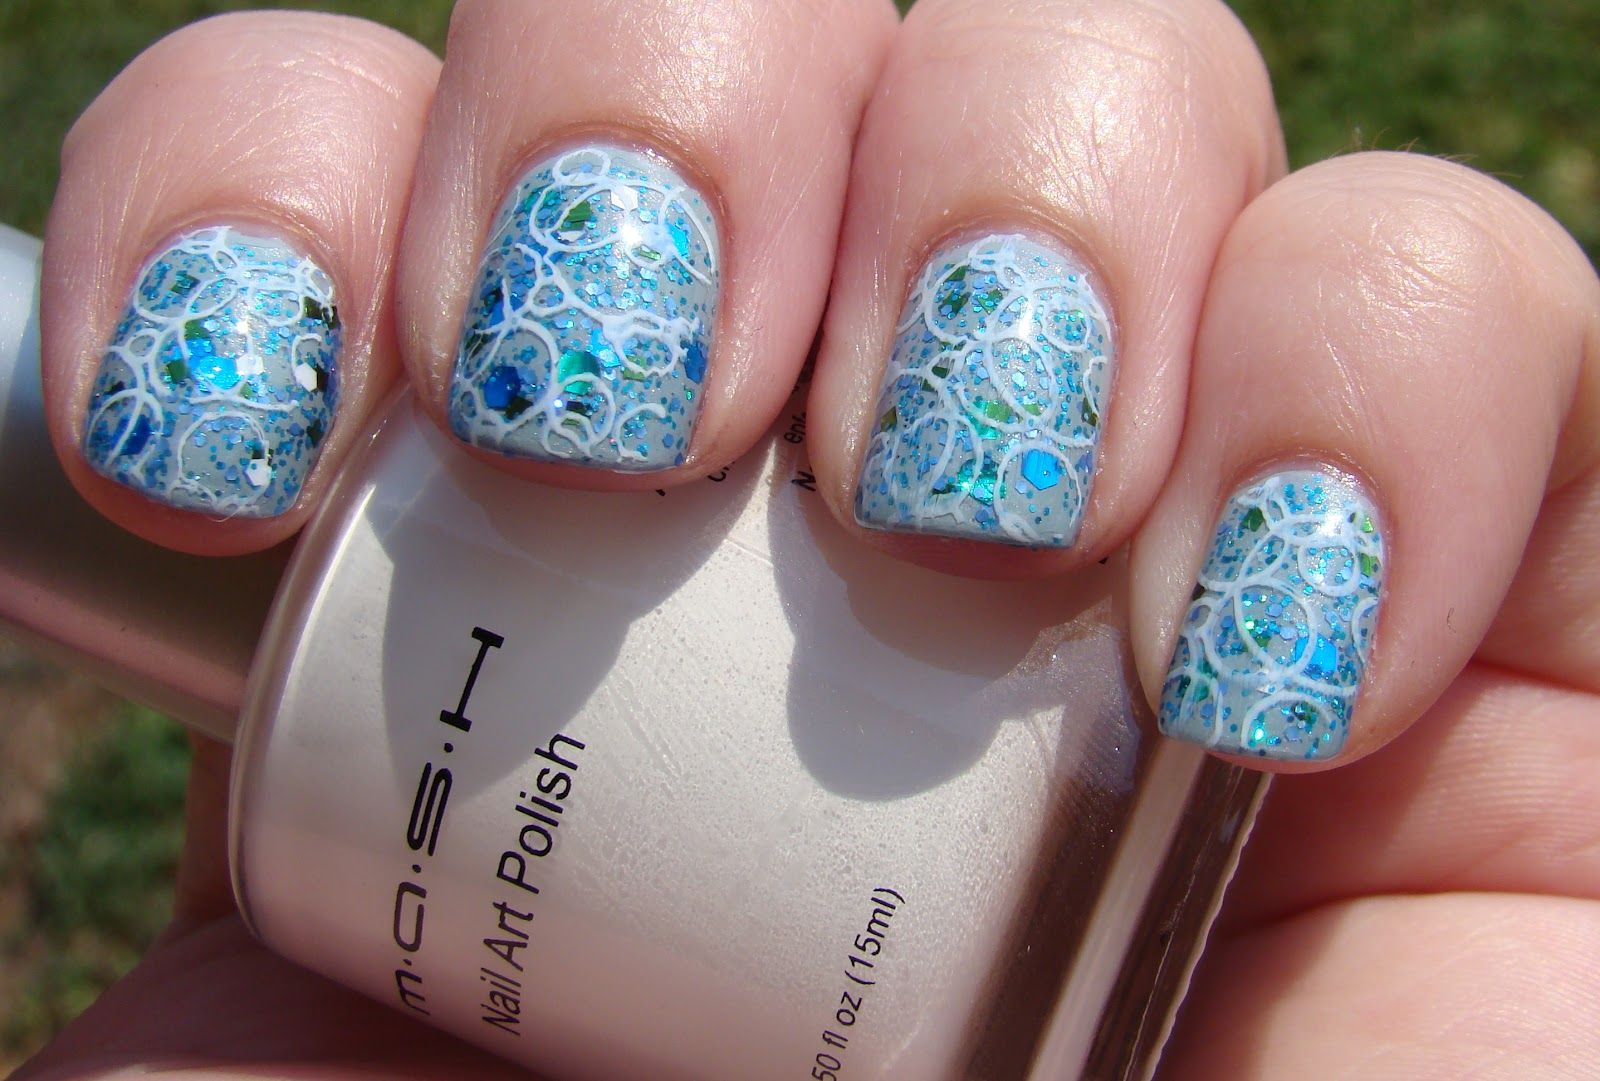 ... Nail Art 20,000 Leagues Under the Sea, MASH Nail Art Polish in White